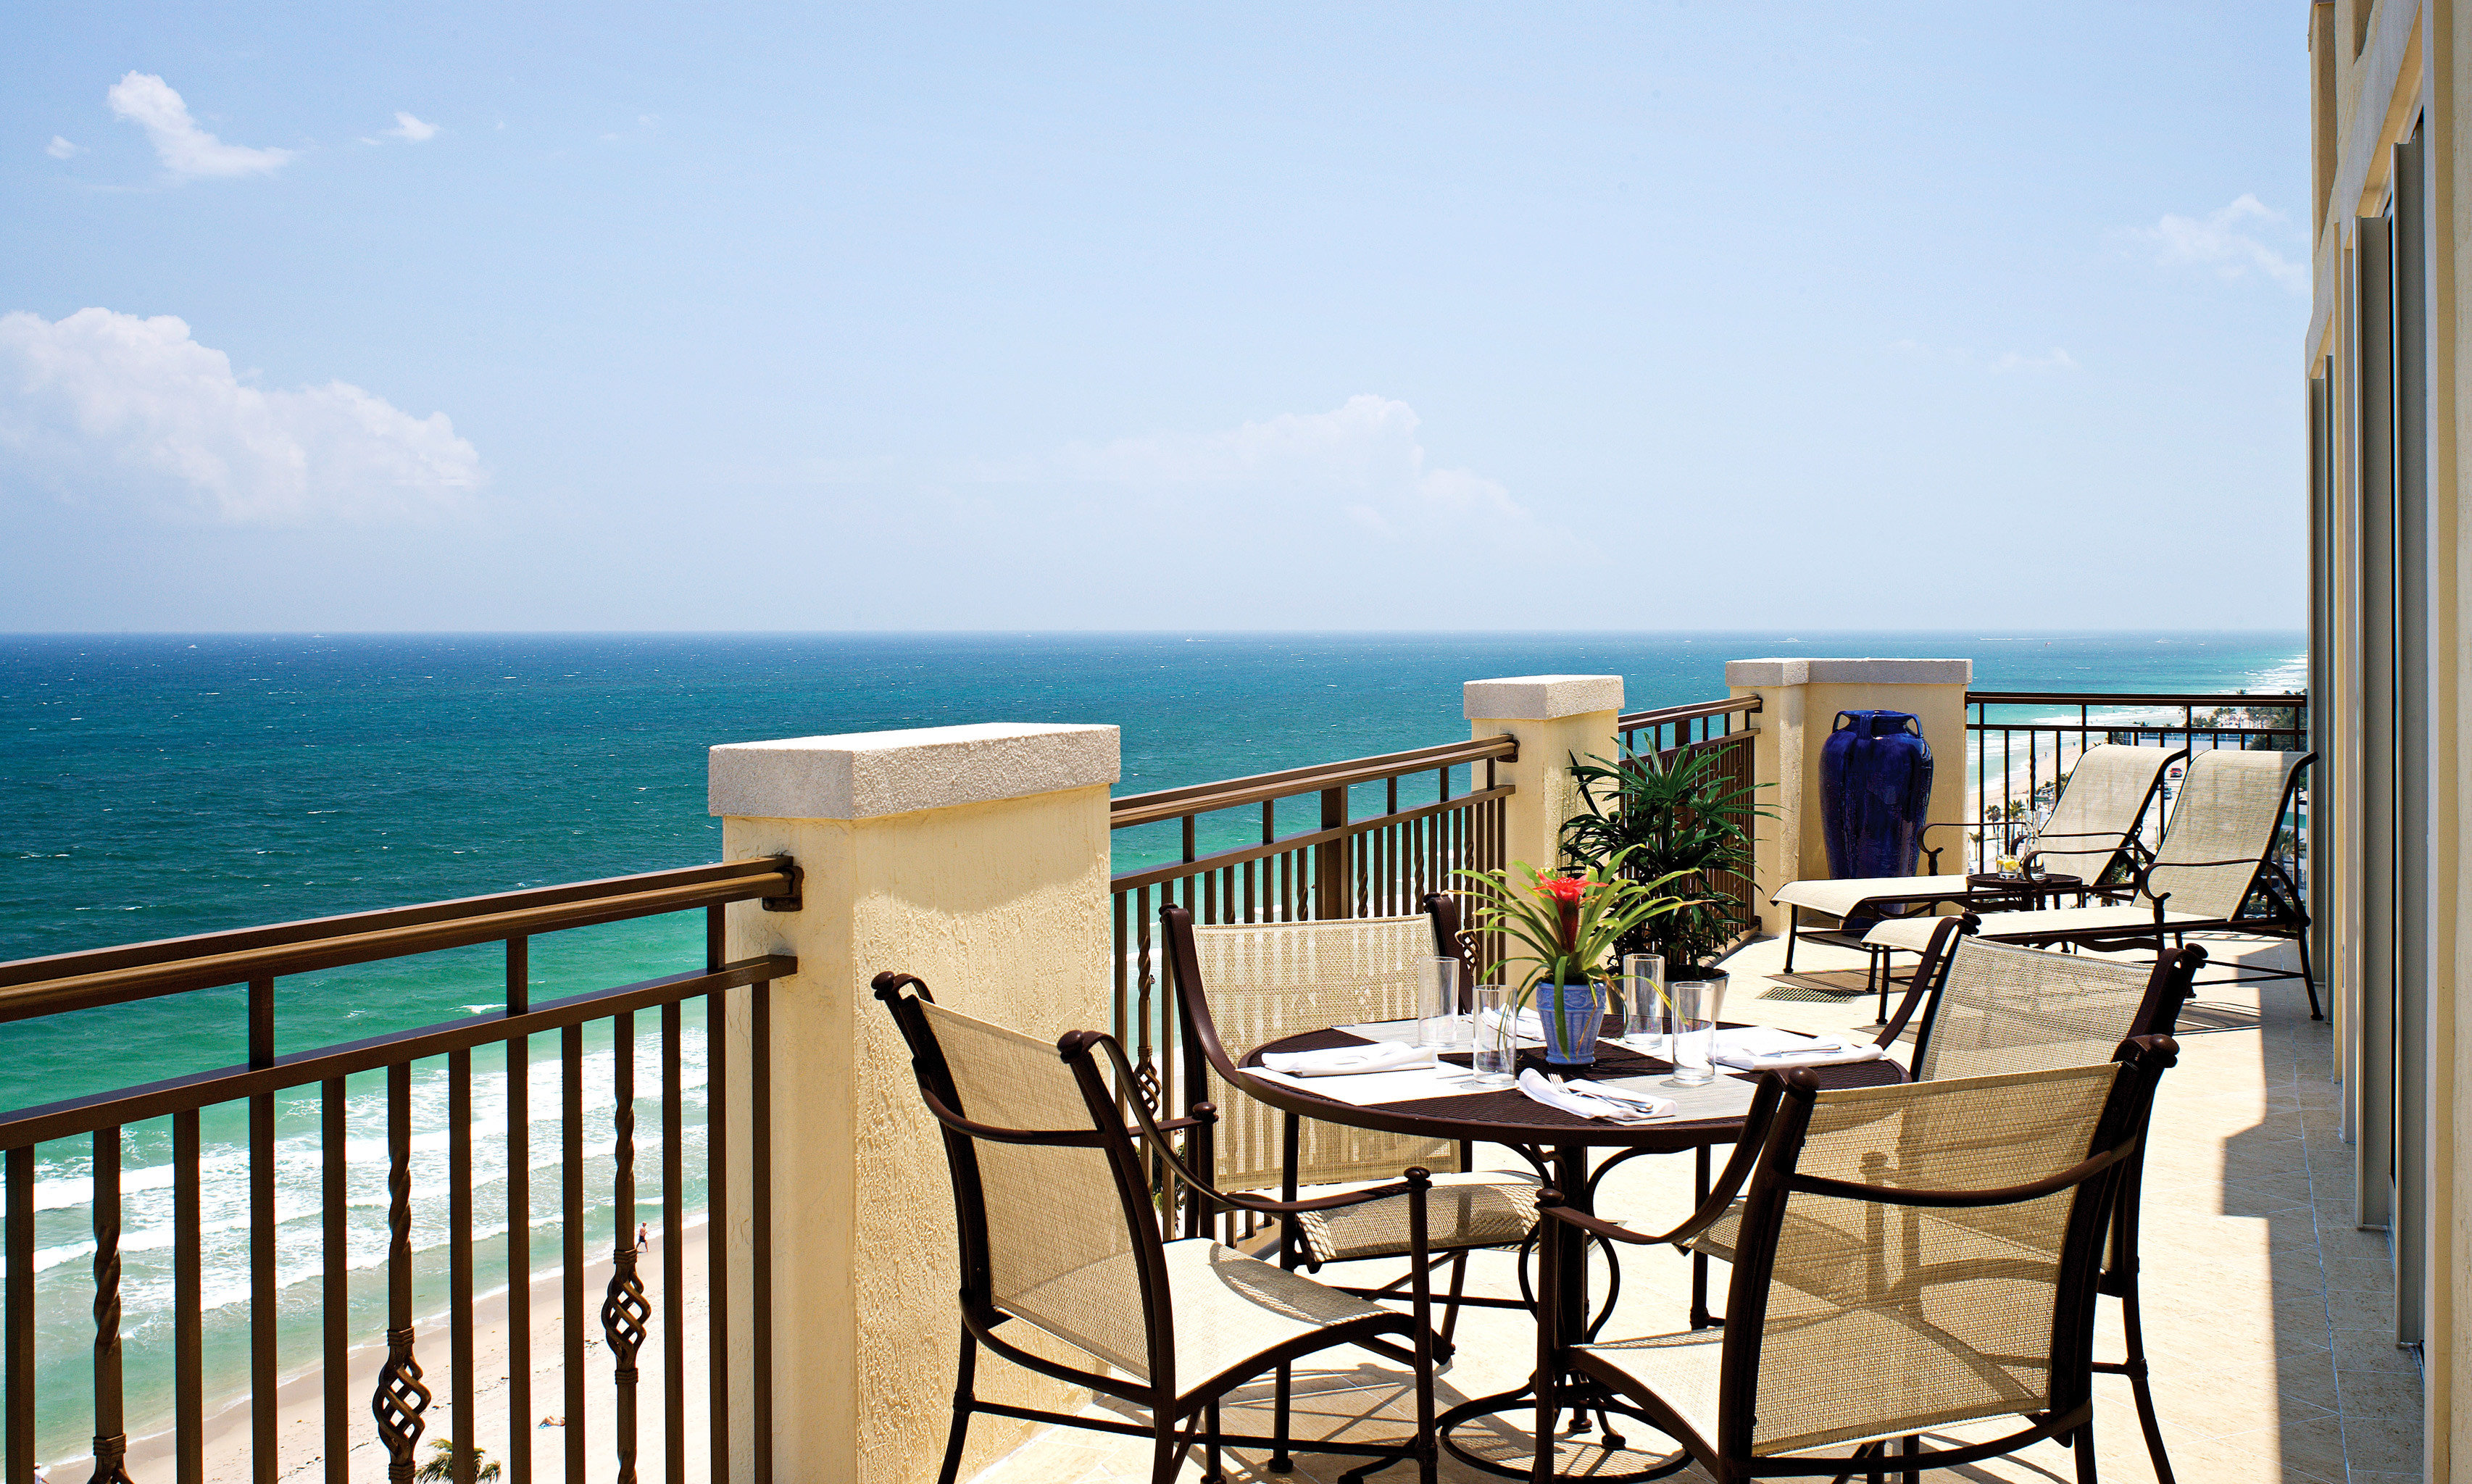 sky water chair property leisure Ocean caribbean Resort Villa Sea Beach Deck home overlooking cottage condominium Balcony shore